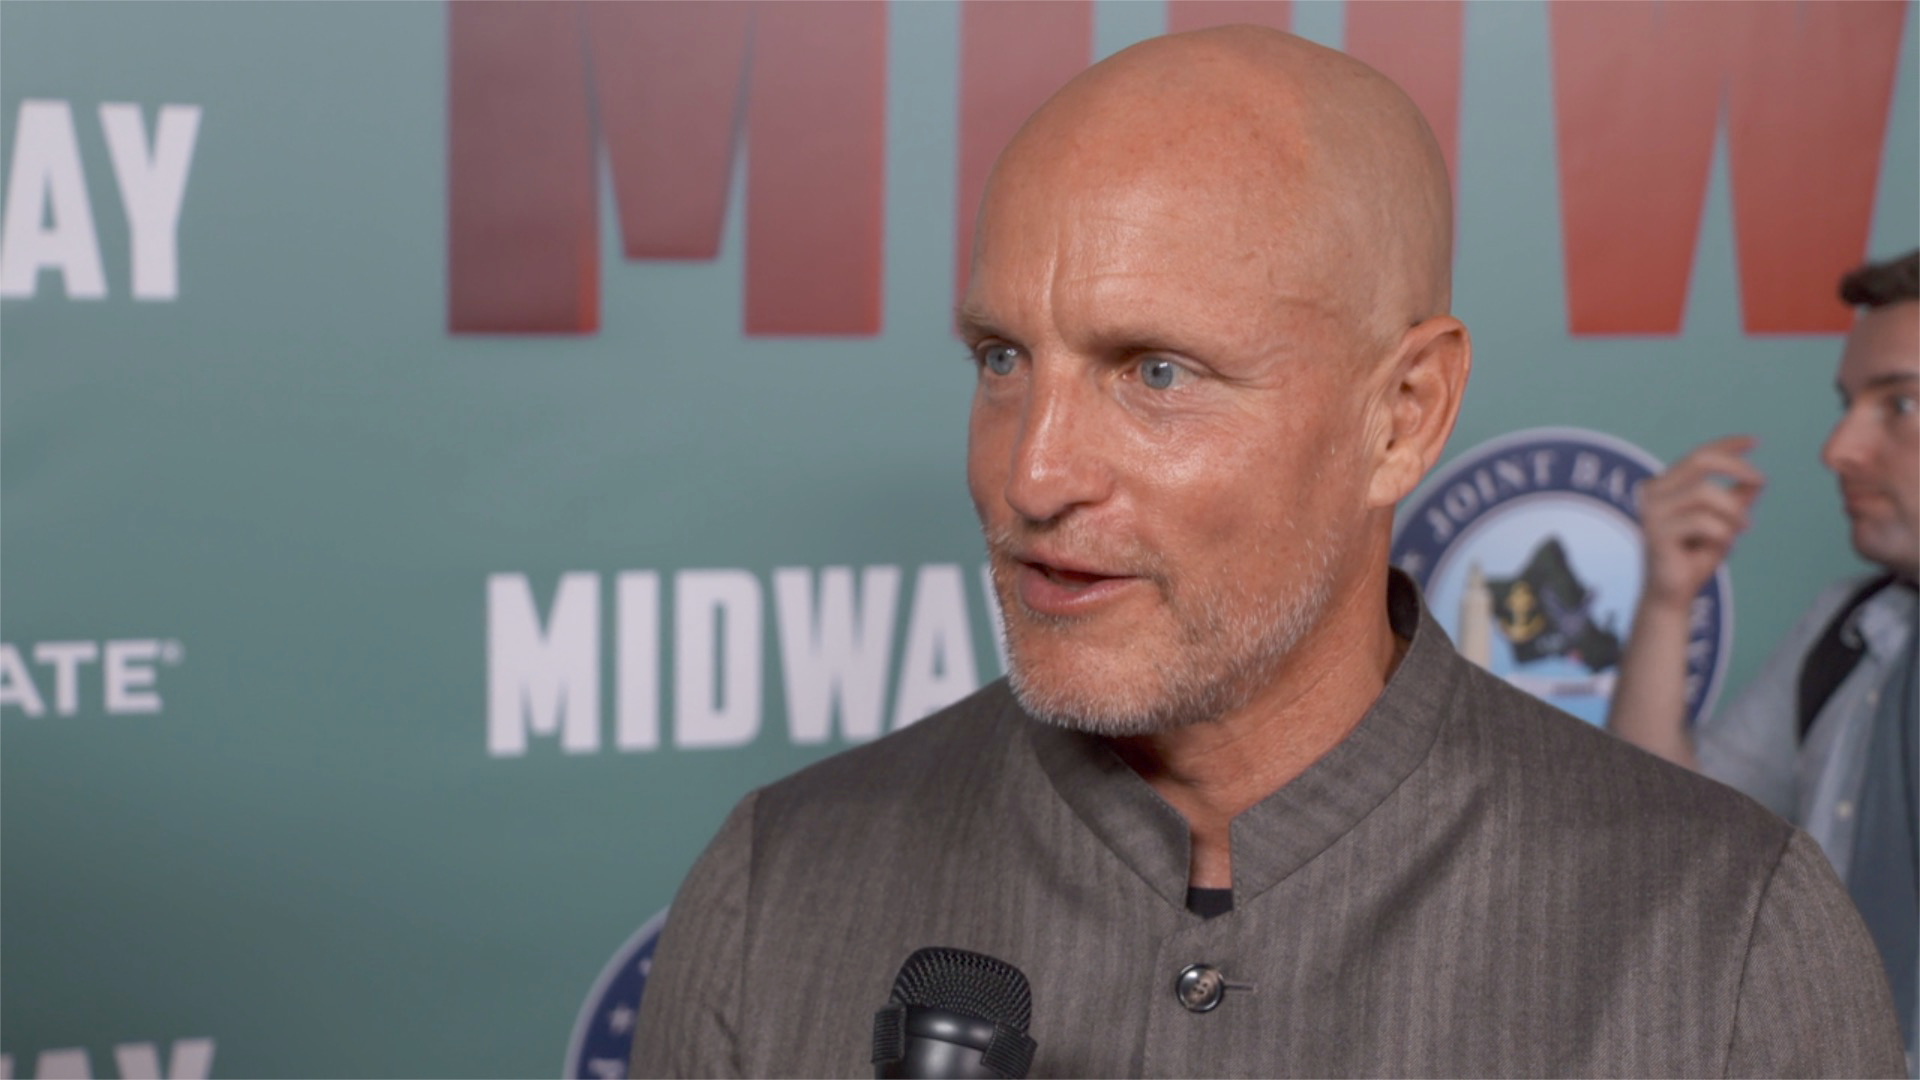 'Midway' Screening: Woody Harrelson